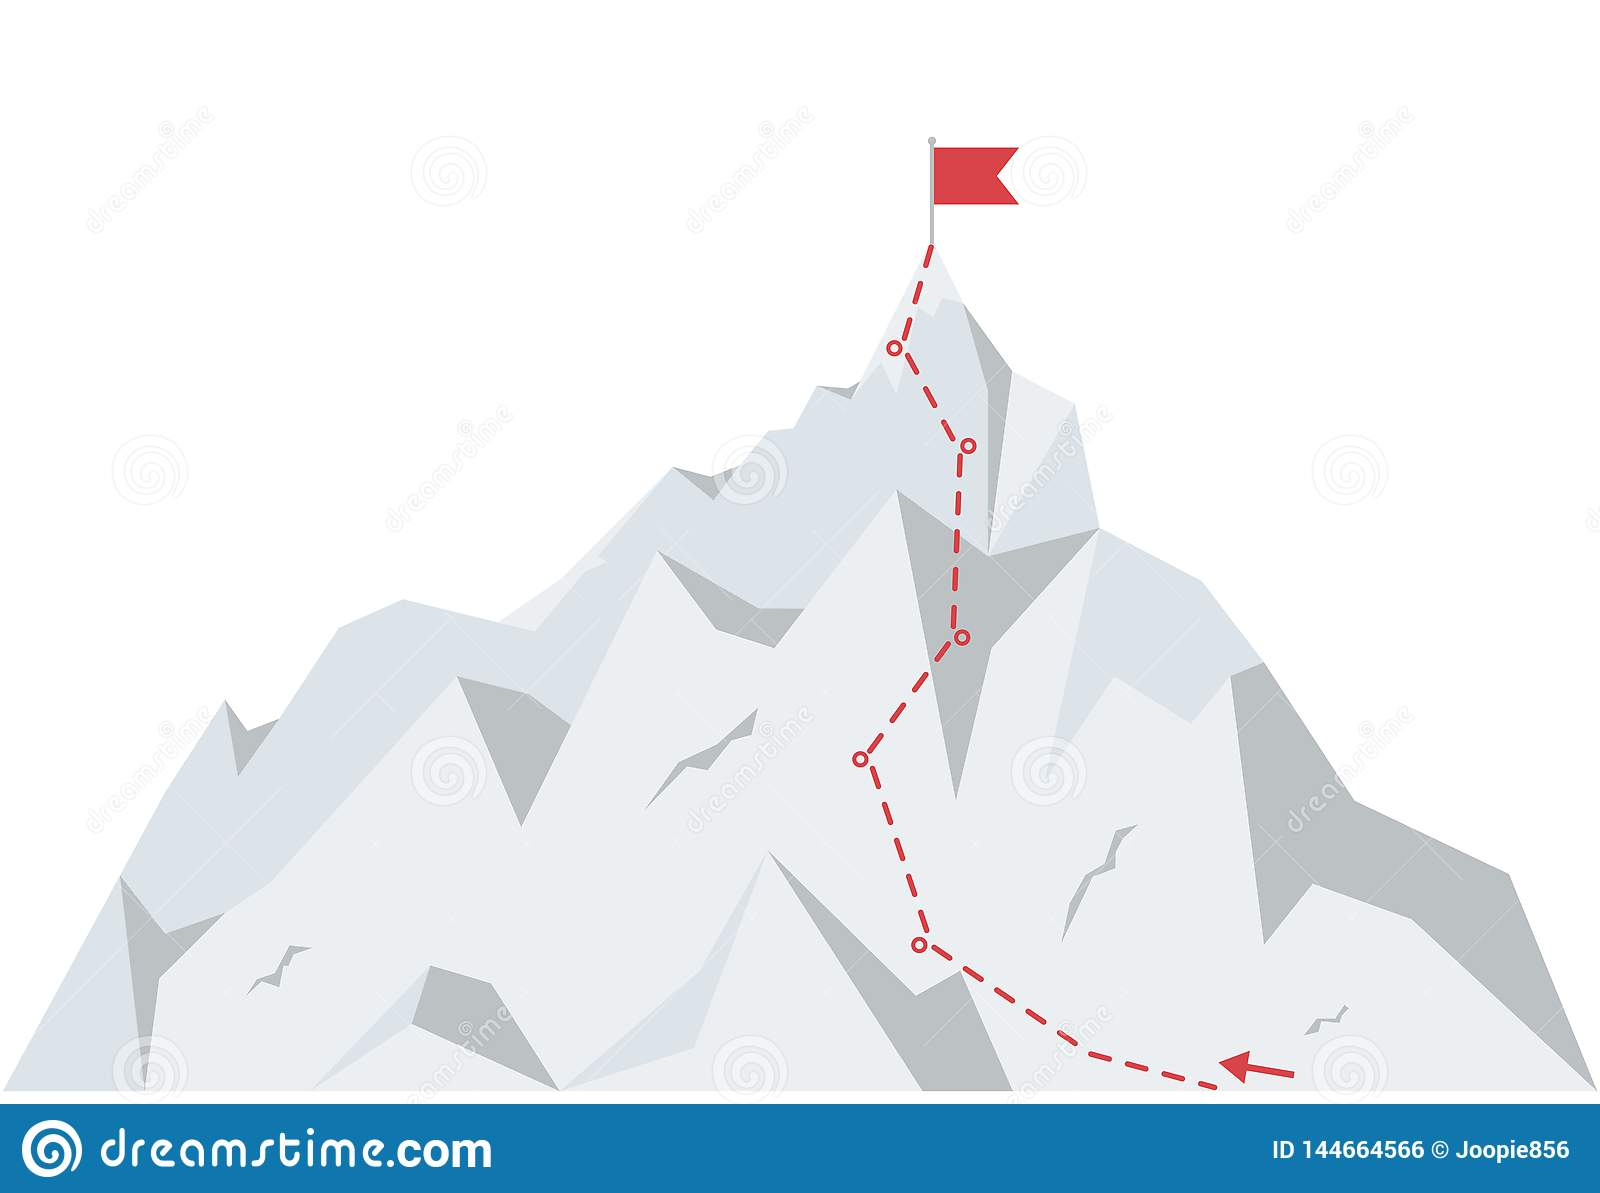 Mountain climbing route to peak. Business journey path to success. Vector illustration in flat style.